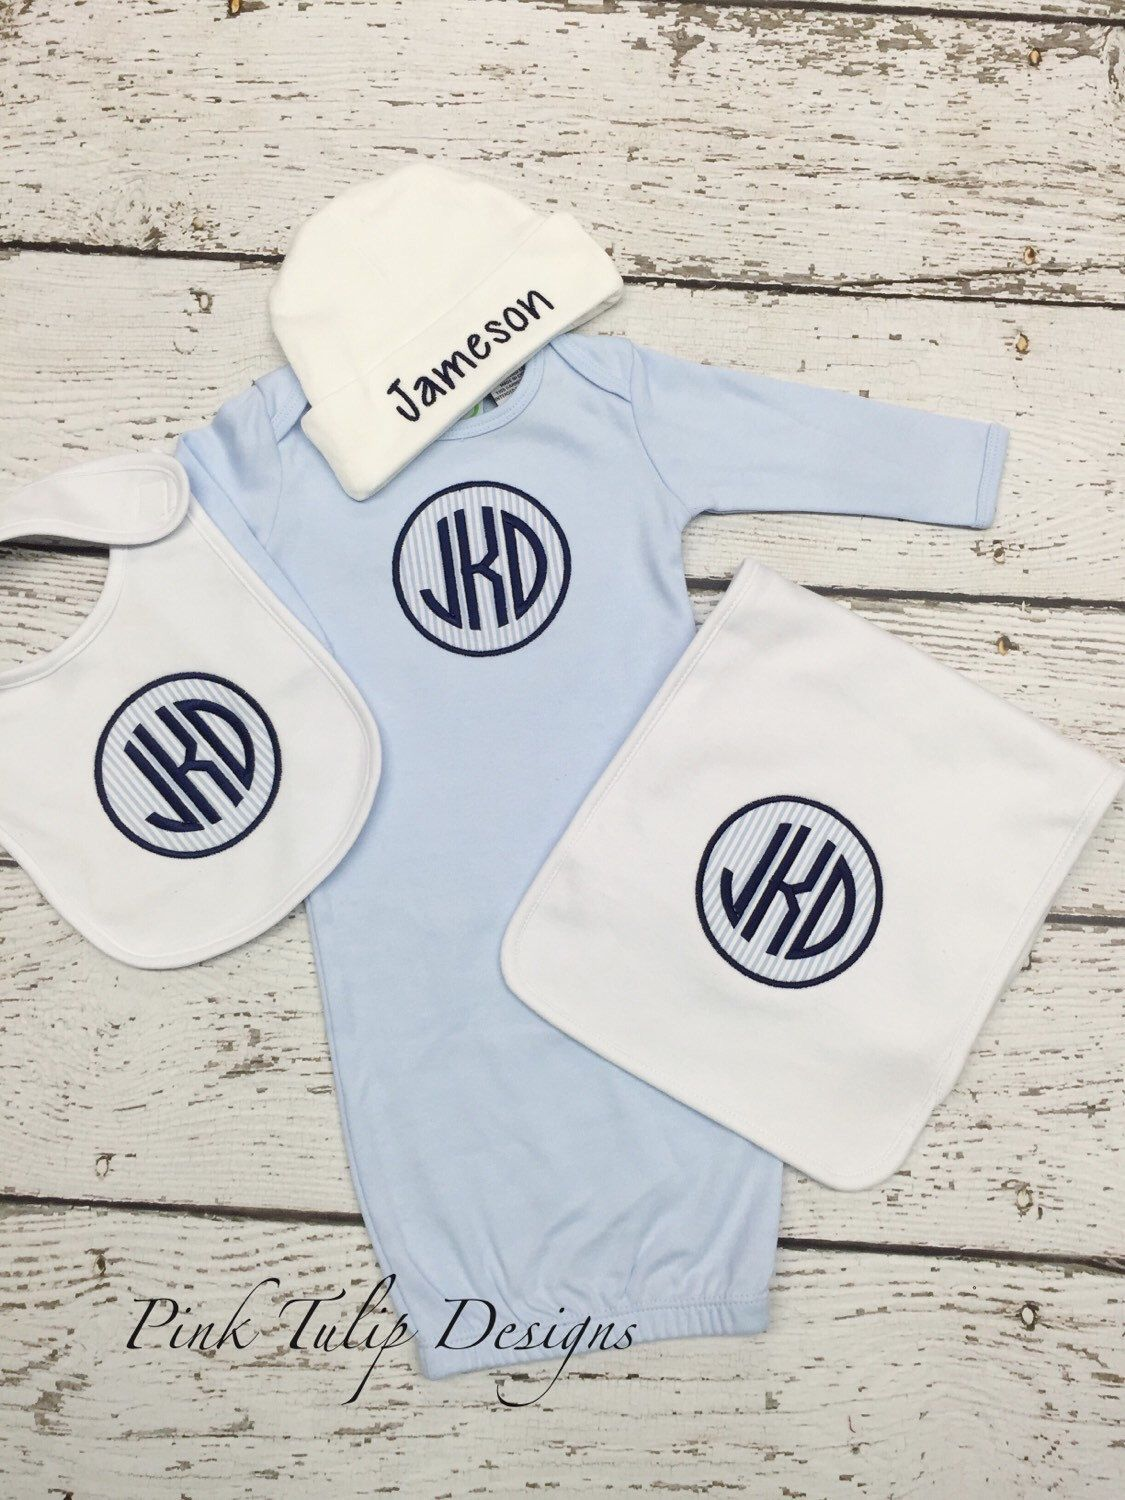 Baby Boy Monogrammed Gown, Cap, Bib, and Burp Cloth Set by PinkTulipOfDaphne on Etsy https://www.etsy.com/listing/261912771/baby-boy-monogrammed-gown-cap-bib-and